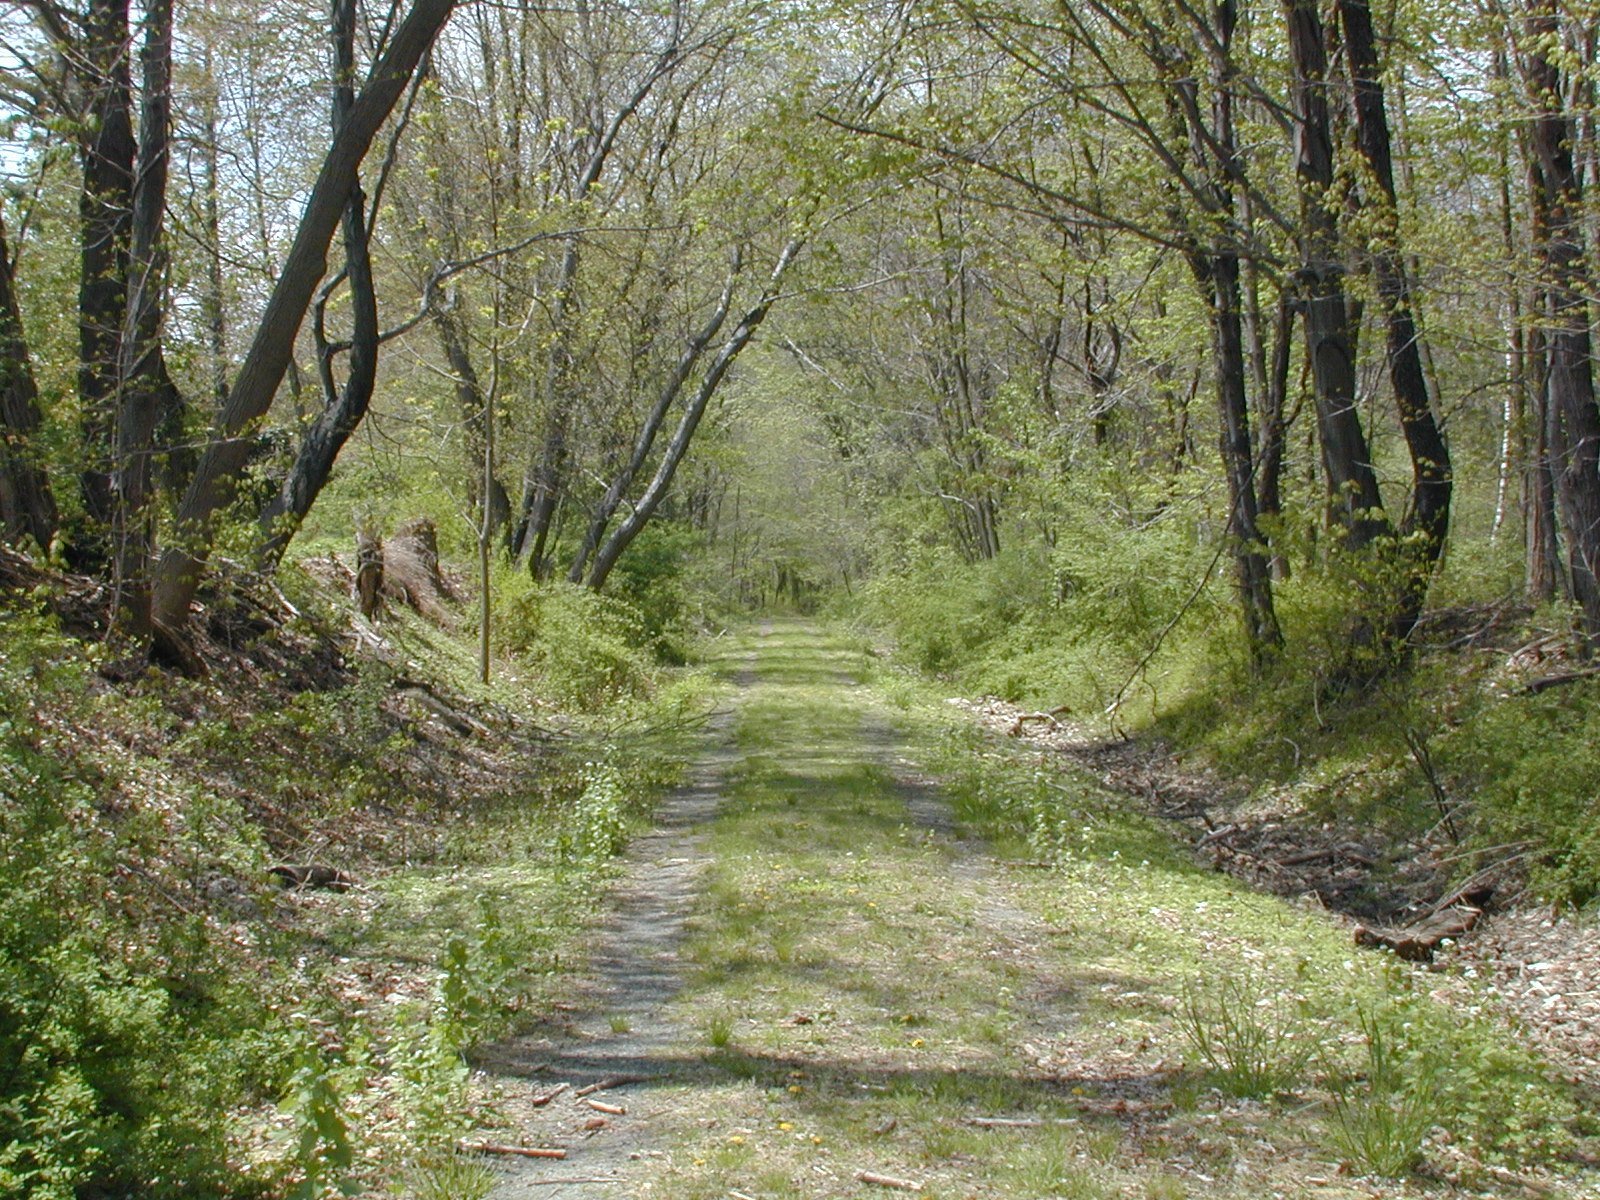 CRNJ Chester Branch Trail